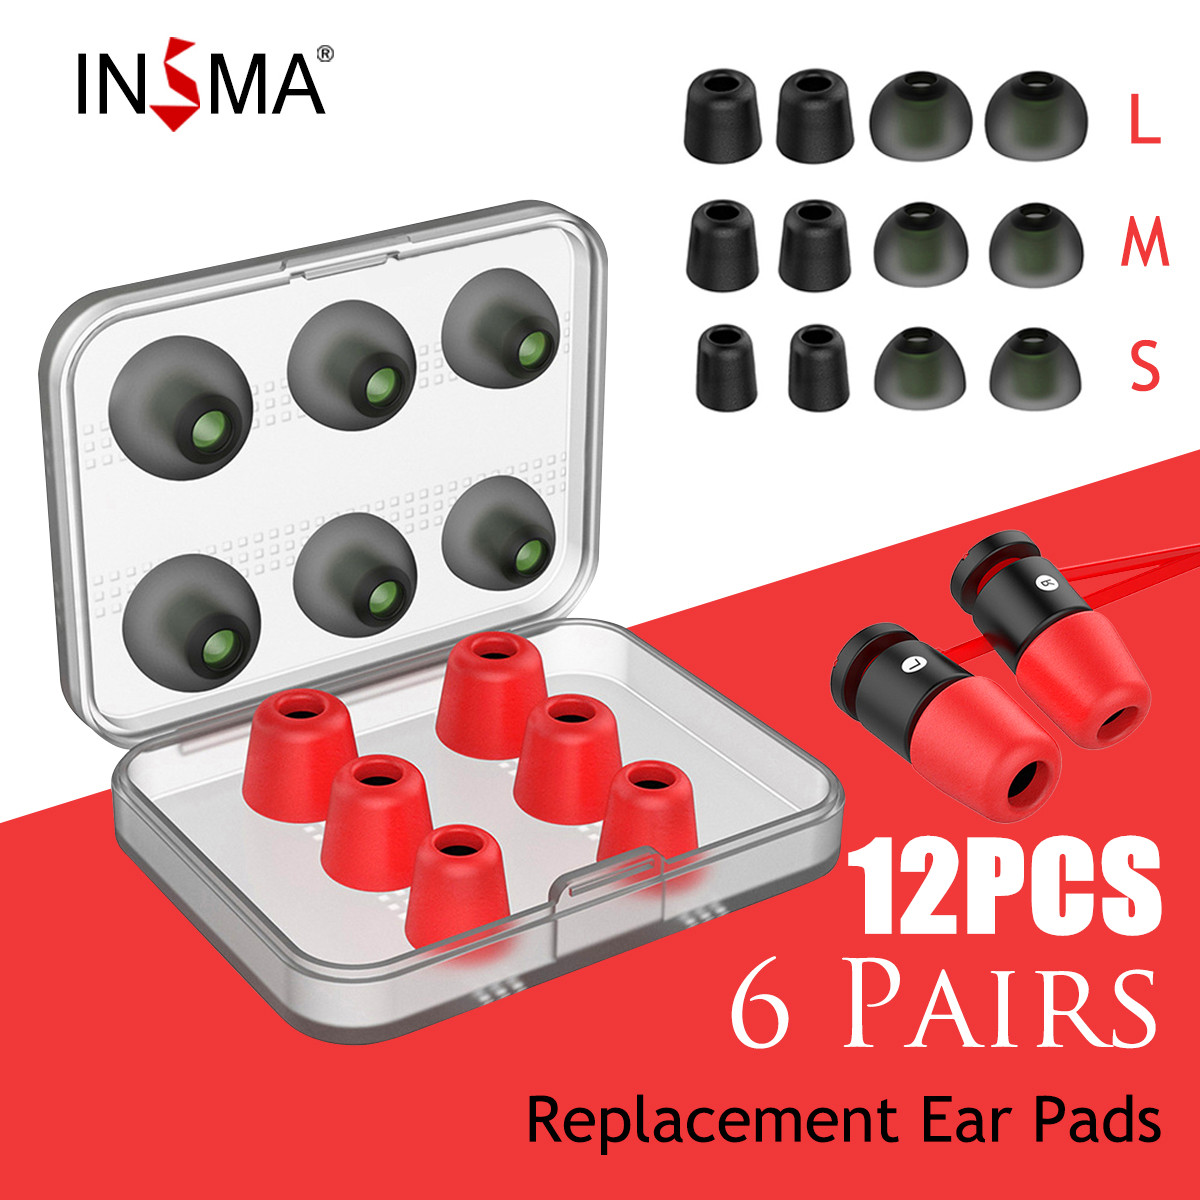 INSMA 12pcs Set Replacement Noise Isolating 3 Pairs Memory Foam Tips & 3 Pairs Silicone Earbuds Ear Pads For Headphone Earphone